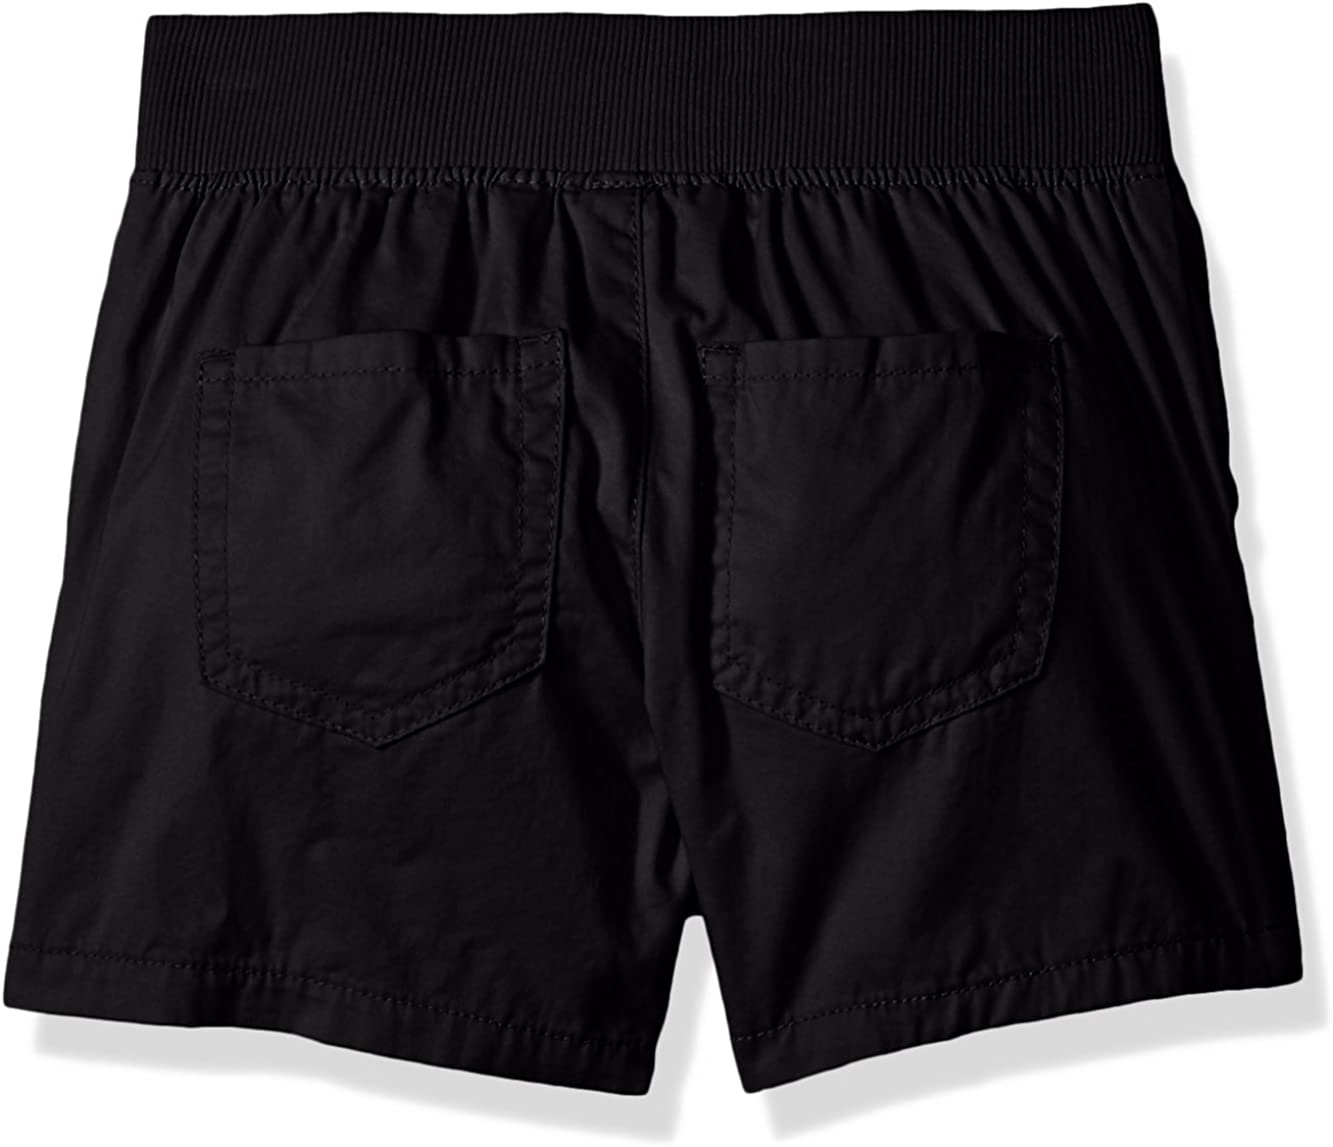 The Childrens Place Girls Fashion Short Shorts